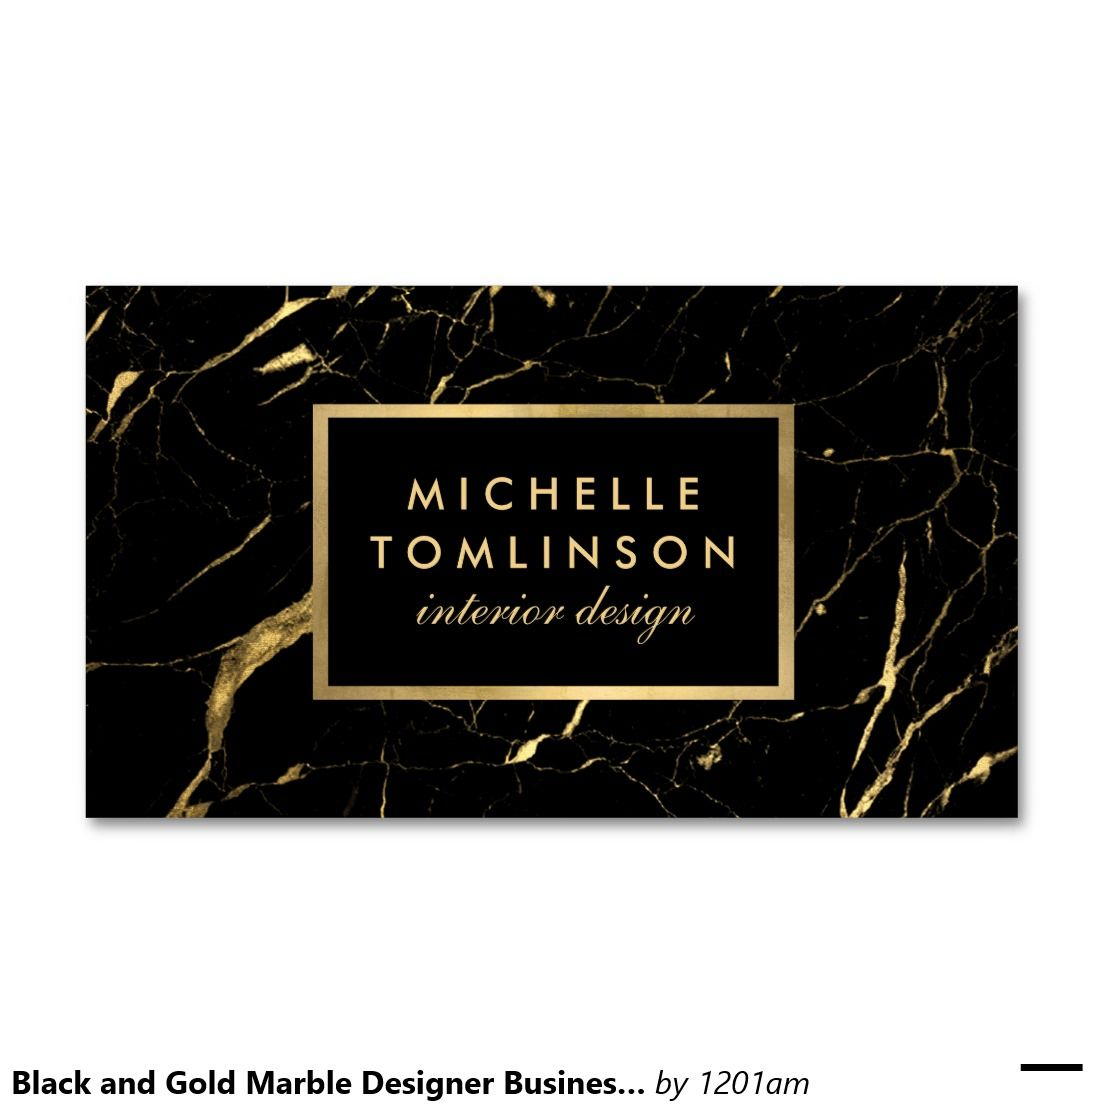 Black and Gold Marble Designer Business Card | Marble interior ...